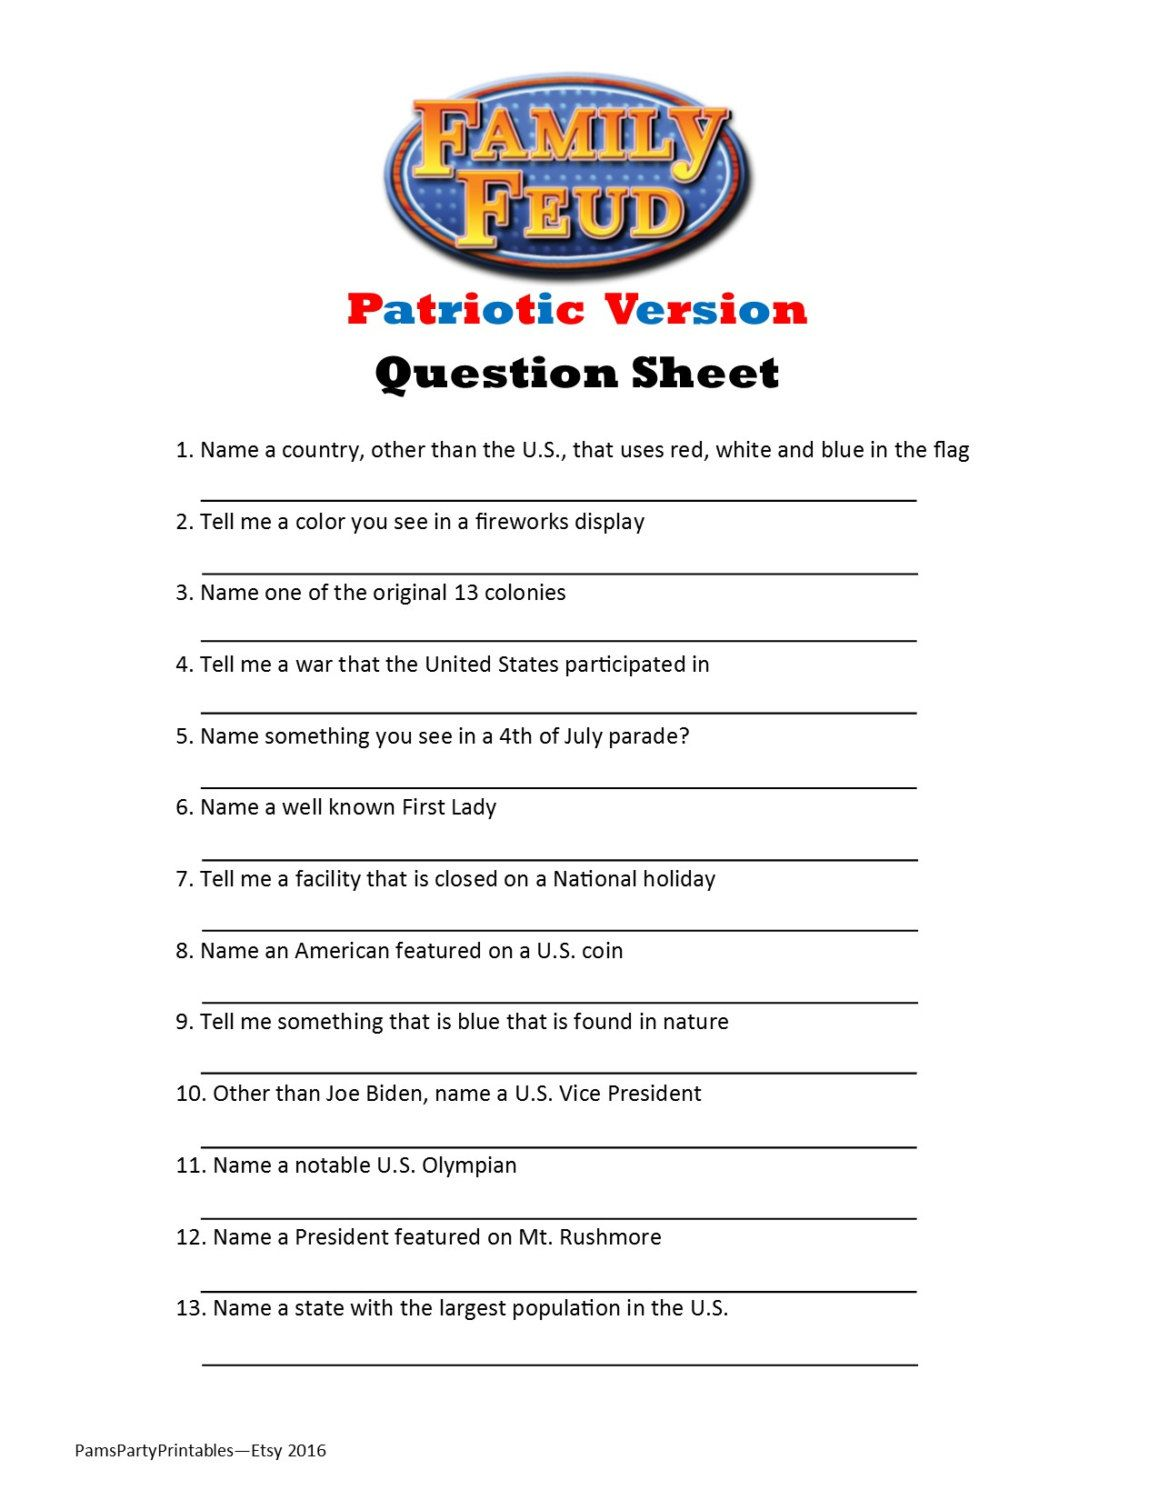 printable patriotic family feud game question sheet | patriotic, Powerpoint templates